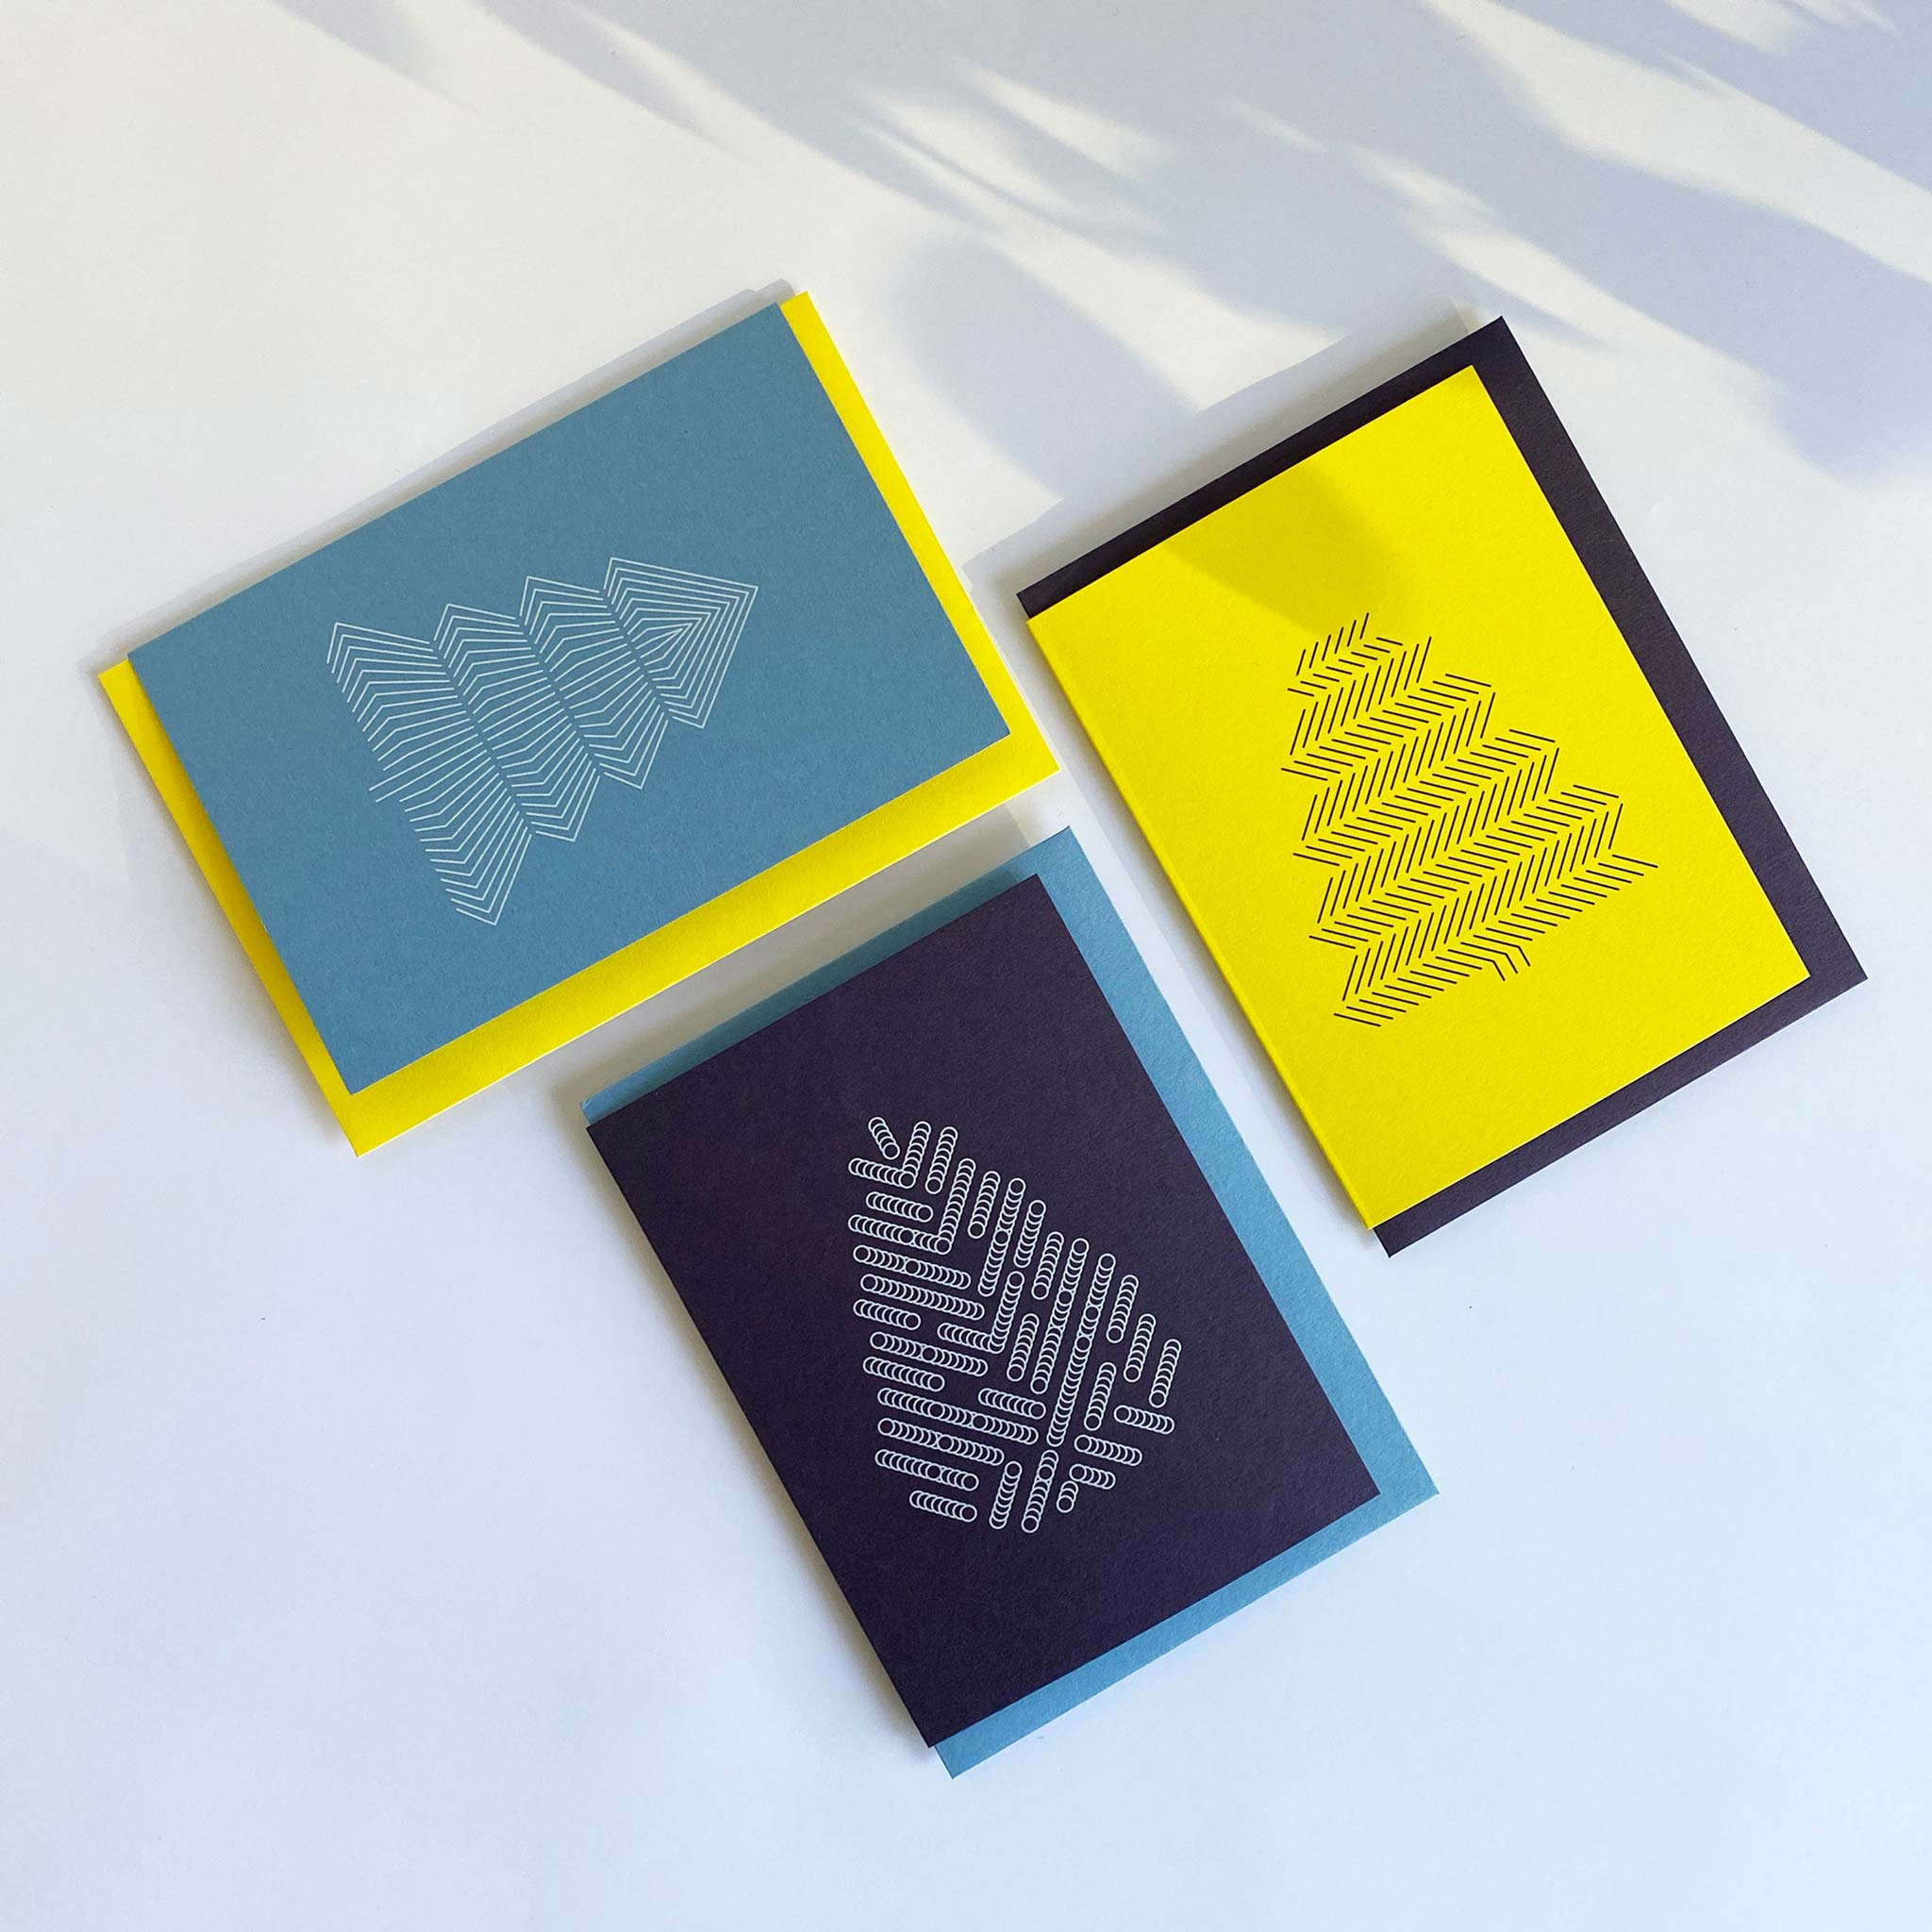 Flat lay of three christmas greeting cards with geometric tree prints. Deep purple with white tree, sky blue with white tree and bright yellow with black tree. Alternating coloured envelopes.